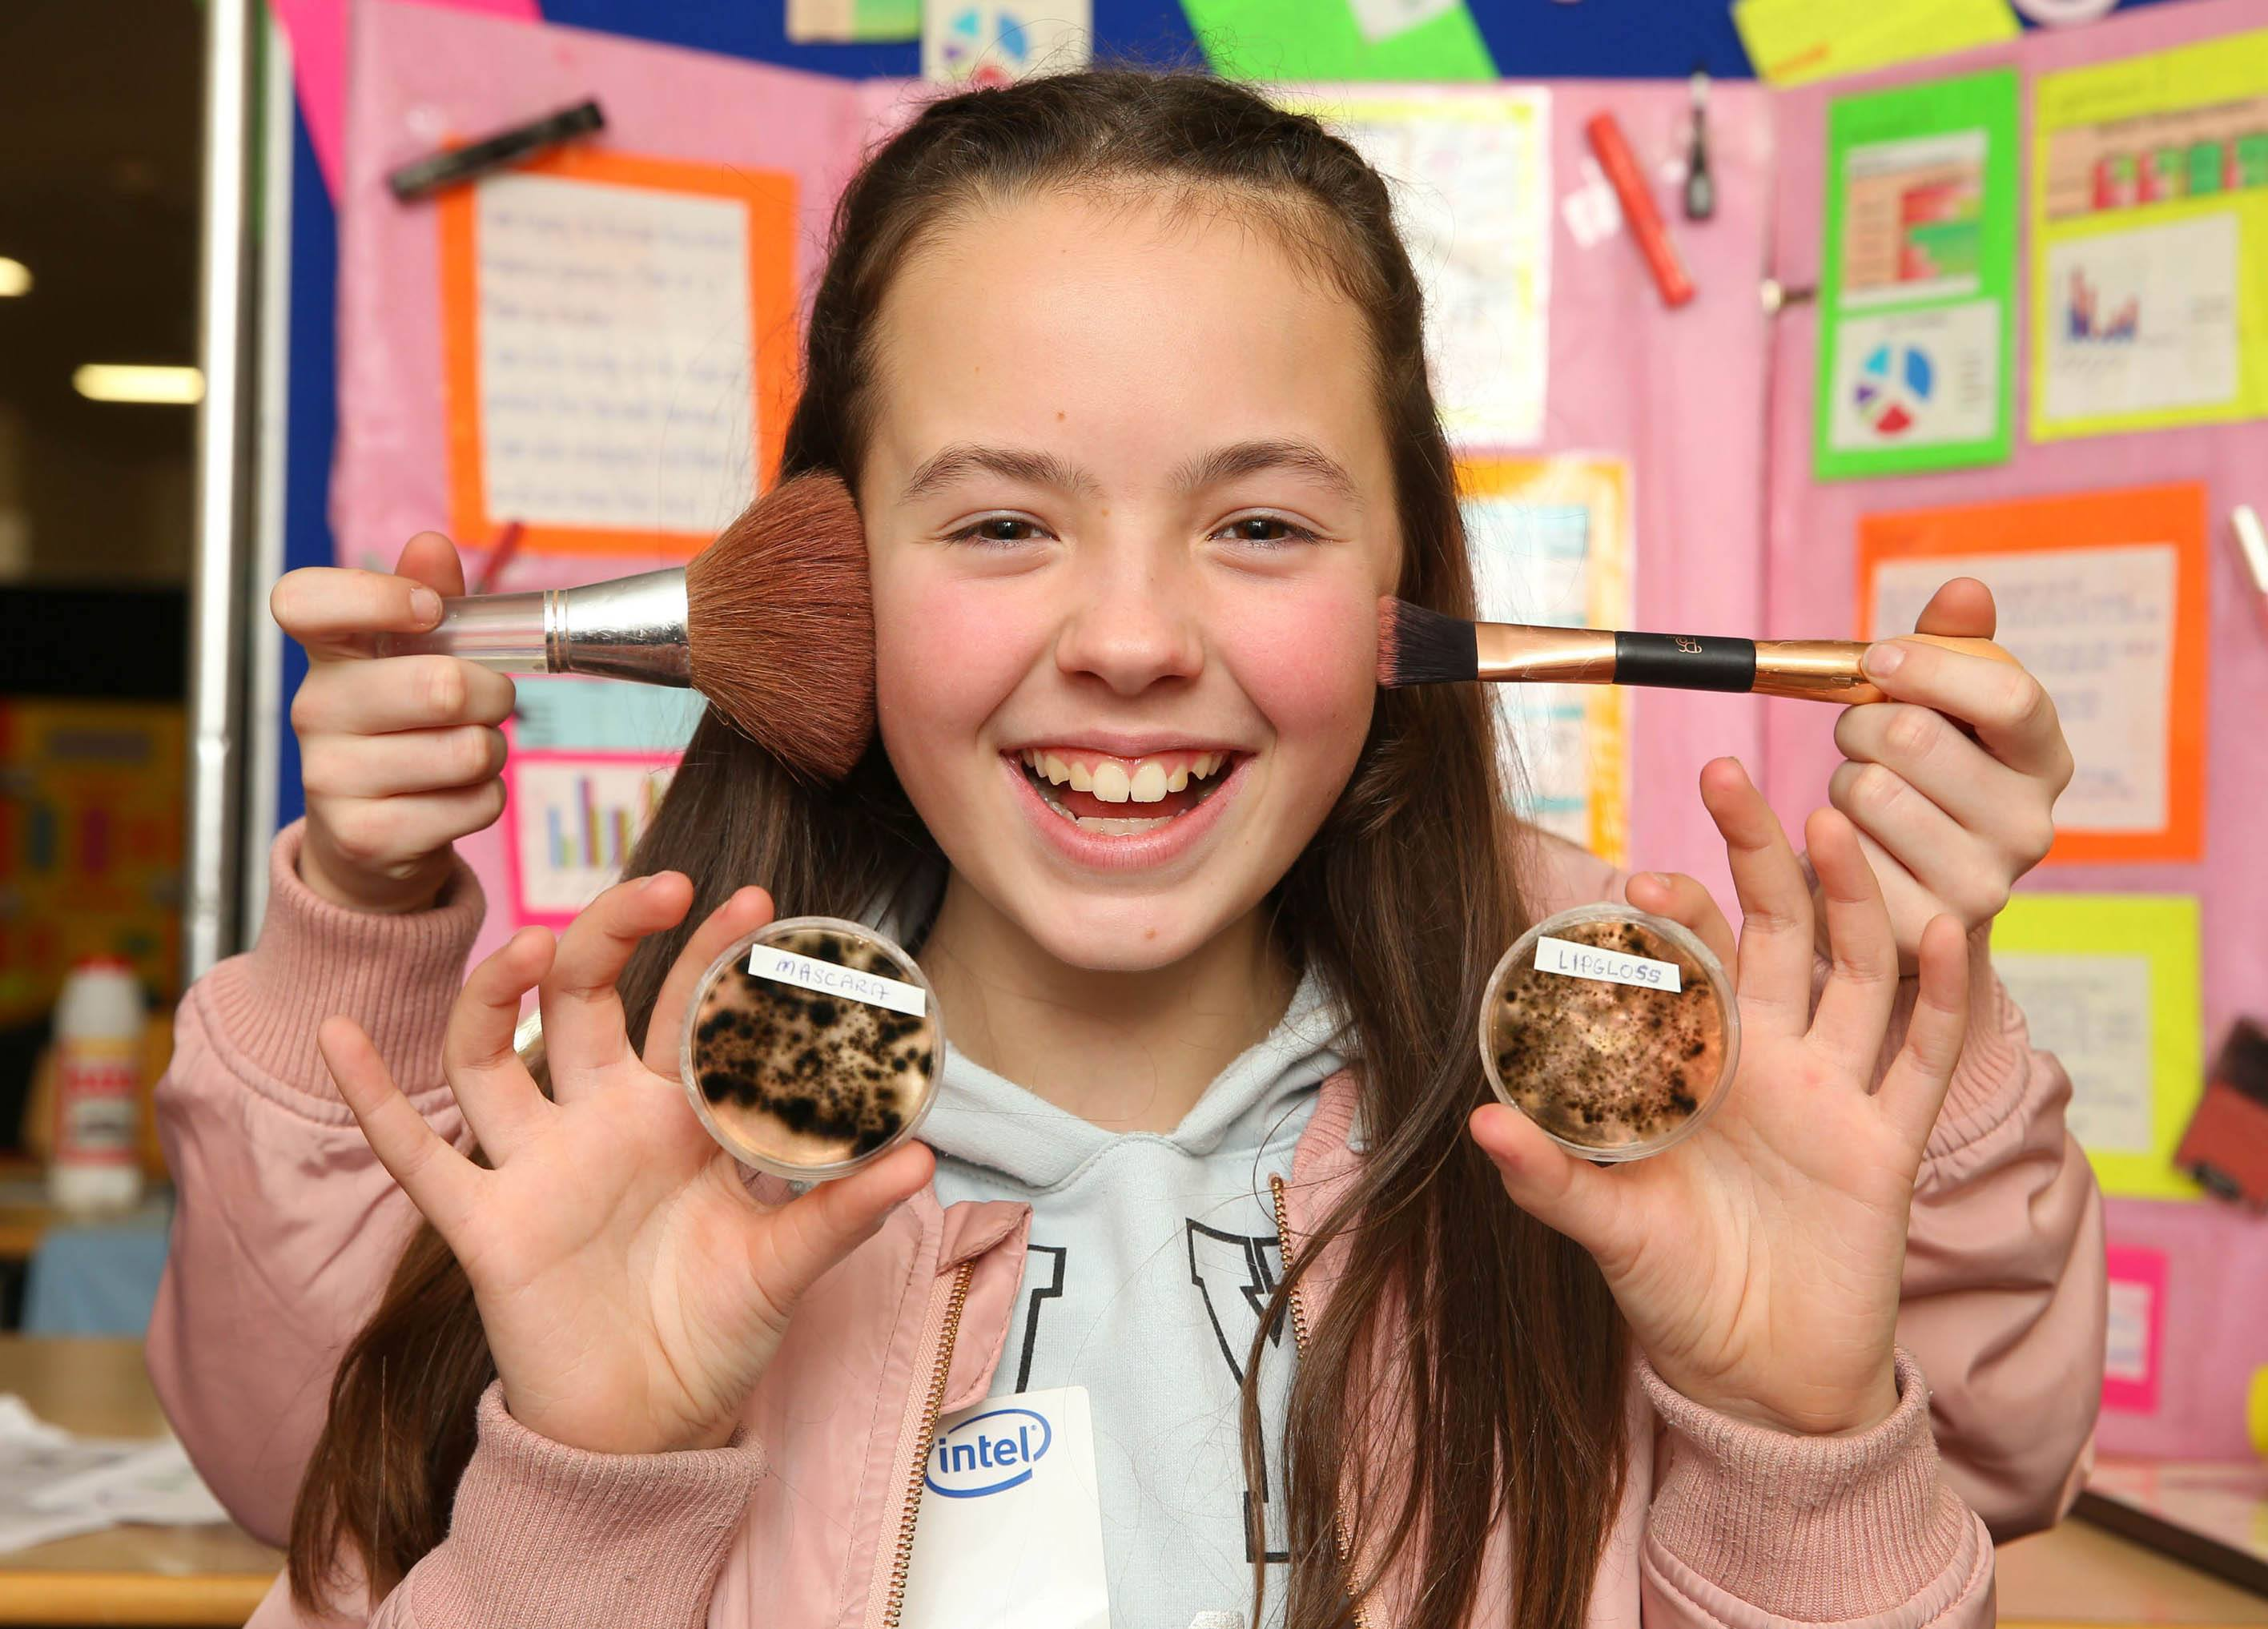 9/12/16 ***NO REPRO FEE*** Sinead O'Dowd aged 11 from Scoil Bhride, Cannistown with her project 'What's growing in make up?' pictured at the Mini Scientist Regional Final which took place on Thursday and Friday at the Intel Ireland site in Leixlip. 78 schools from across the region competed for a place in the grand final which will take place on February the 3rd at the Helix, Dublin. Over the two days, 18 projects were selected to go forward to the next stage. The Intel Mini Scientist Exhibition is a competition for Primary school students in which they develop science related projects which are exhibited at fairs within their own schools. This year, over 6,000 students participated in Mini Scientist from 14 different counties with over 100 different schools taking part. Pic: Marc O'Sullivan